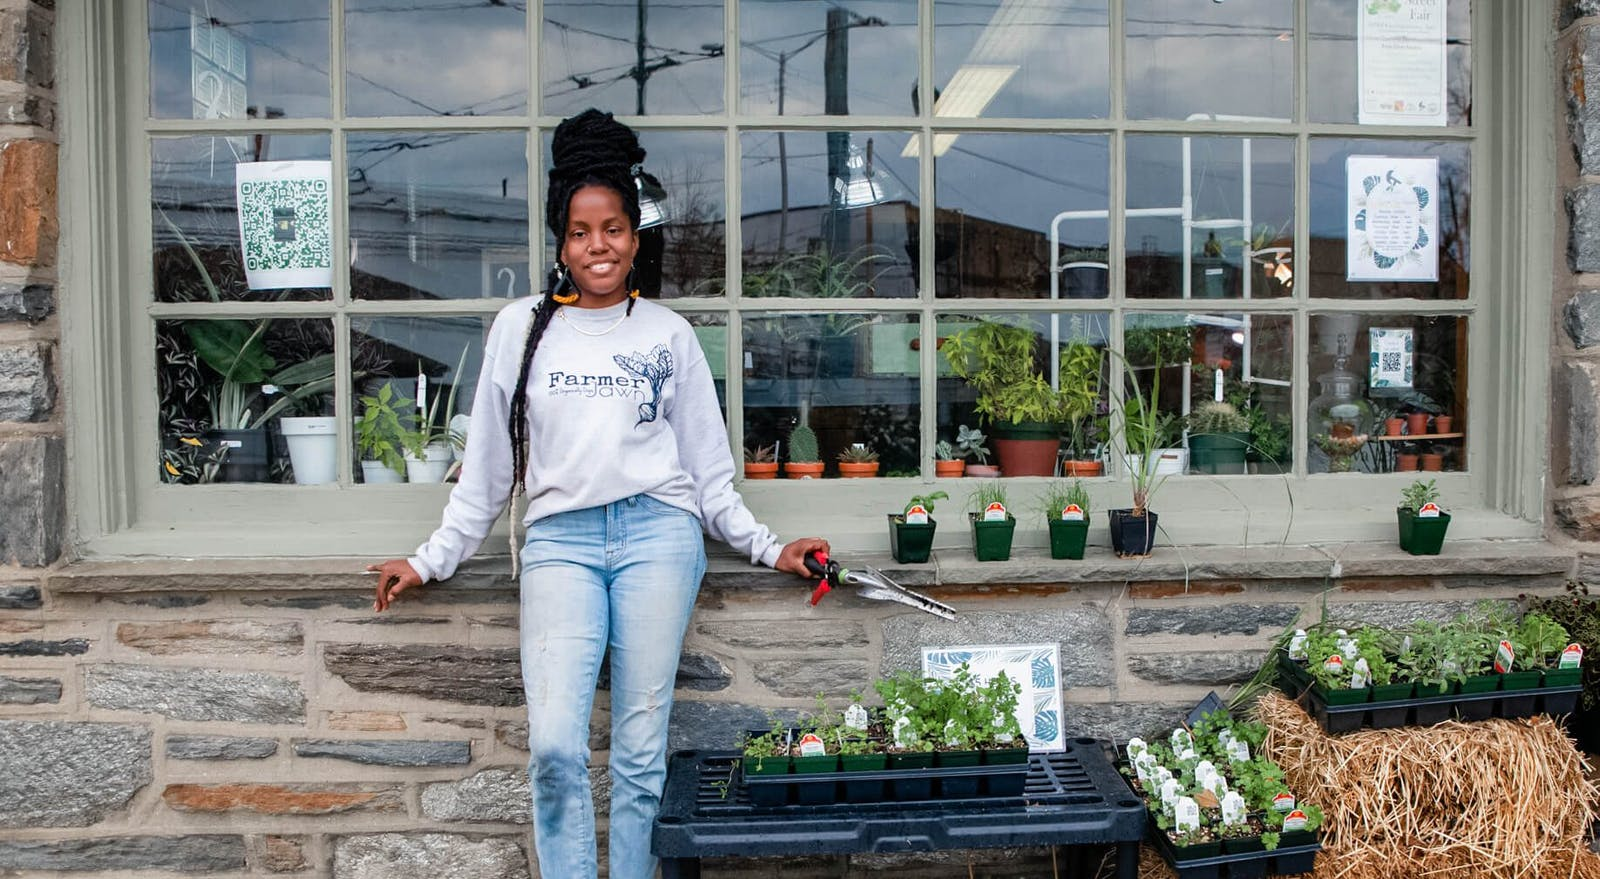 Creating Space to Grow with FarmerJawn